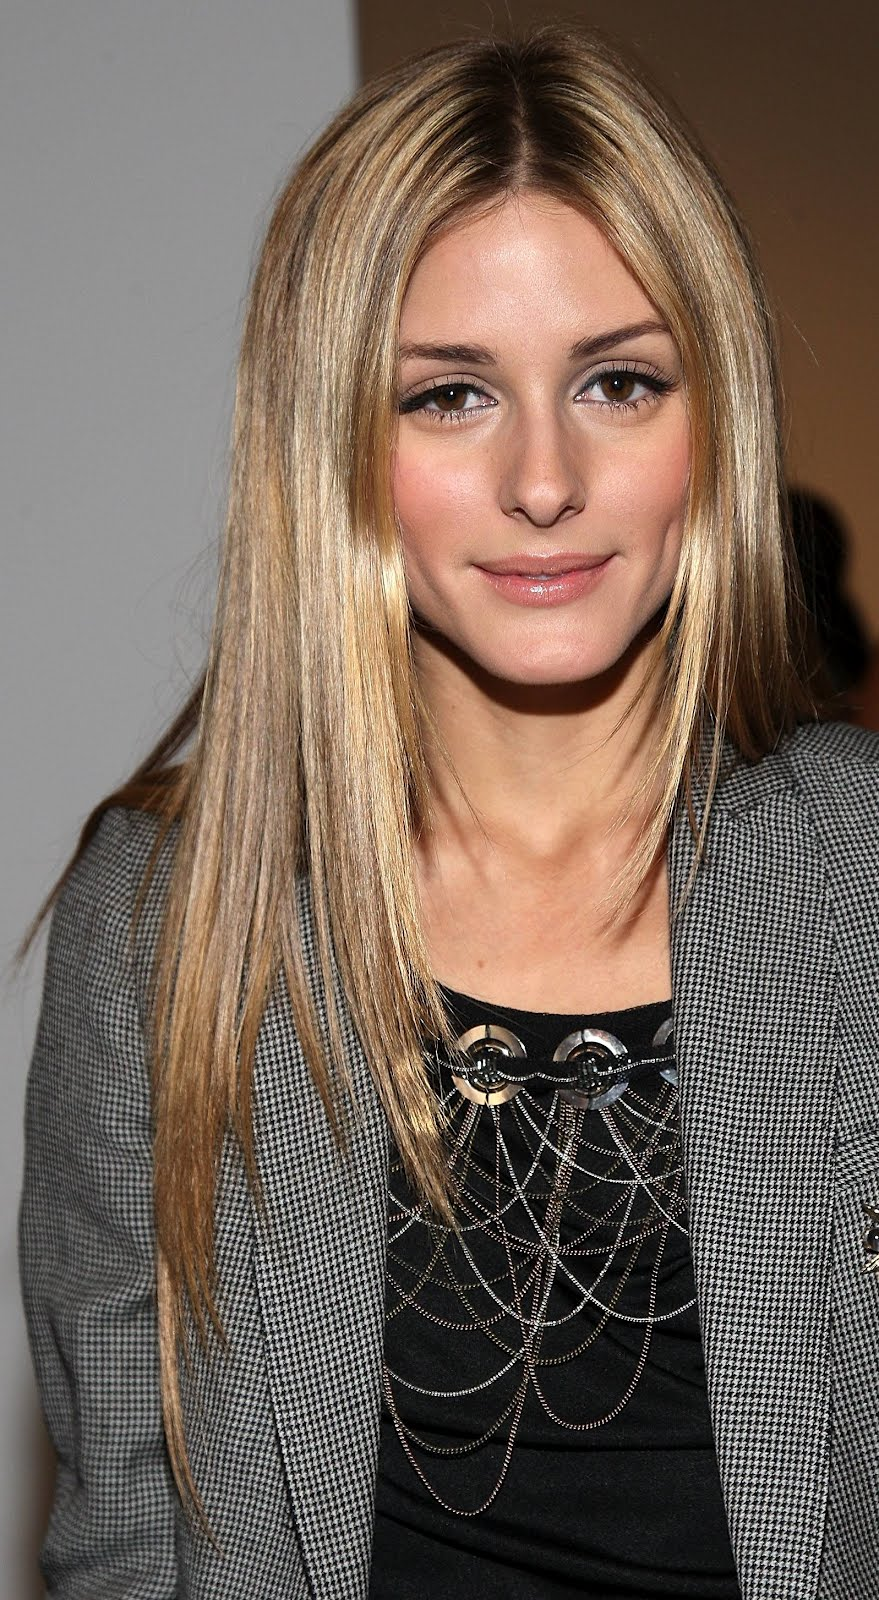 Hairstyle Name Olivia Palermo Hairstyles Pictures